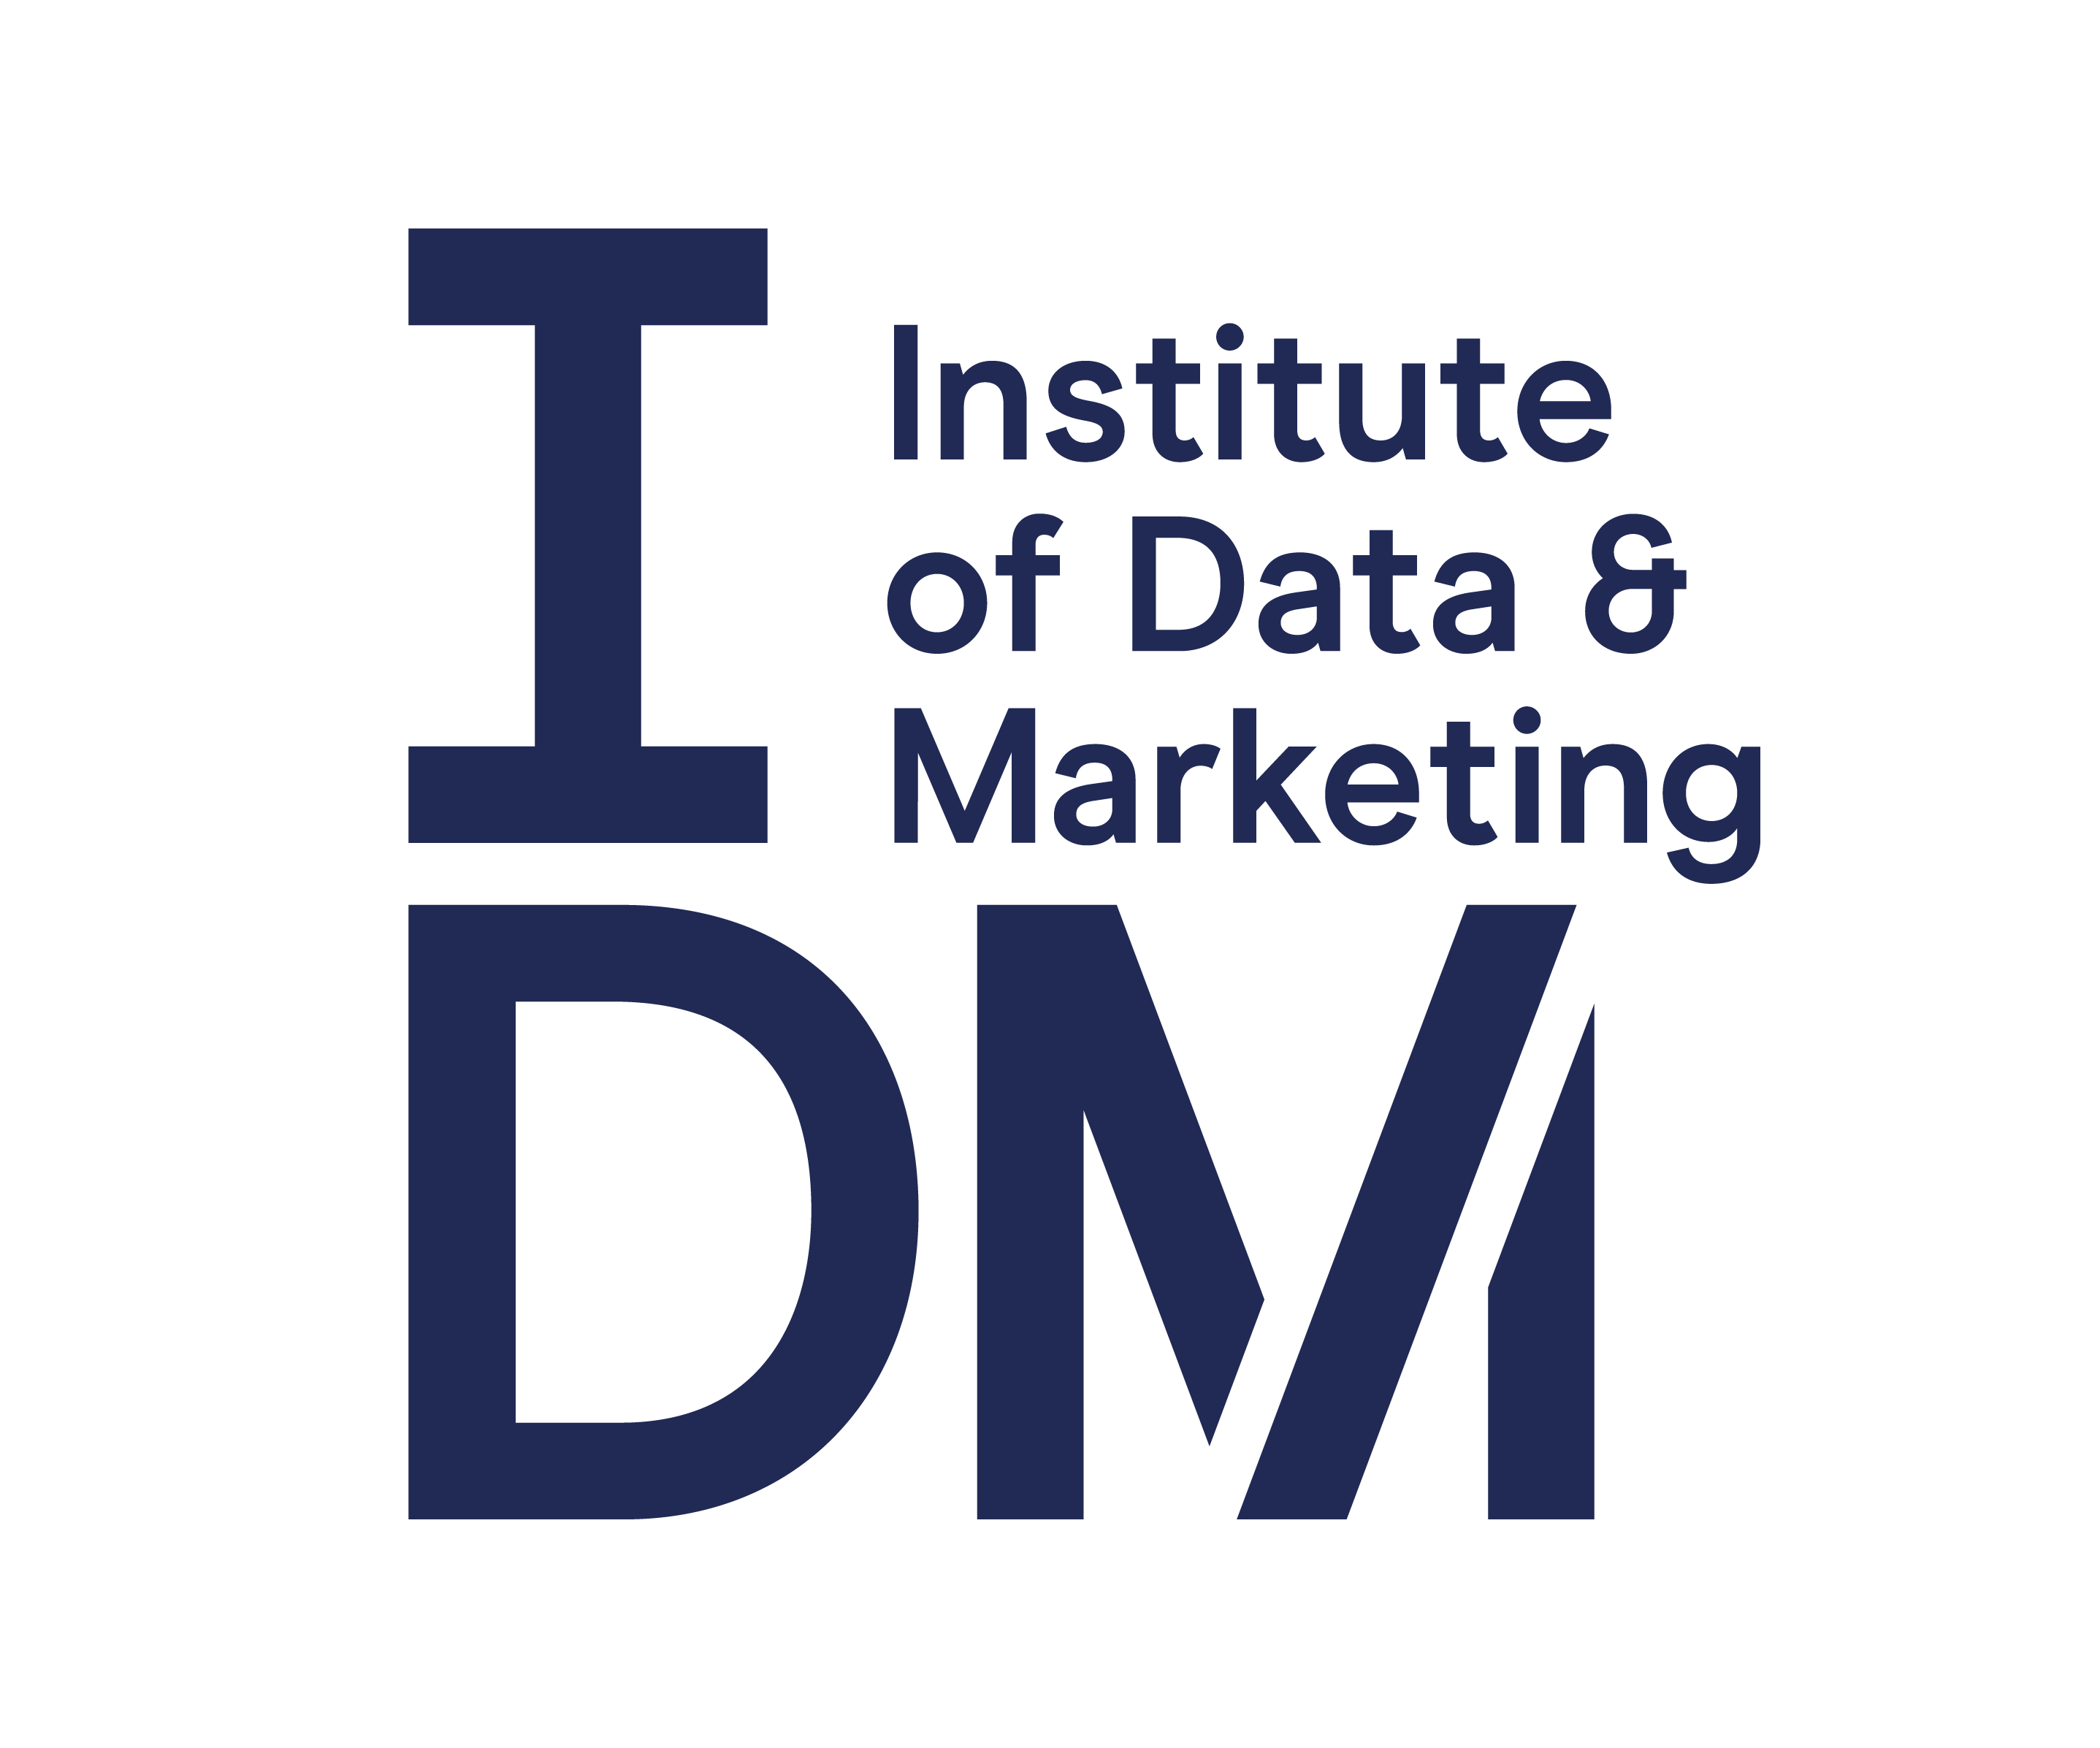 An image of the Institute of Data and Marketing logo